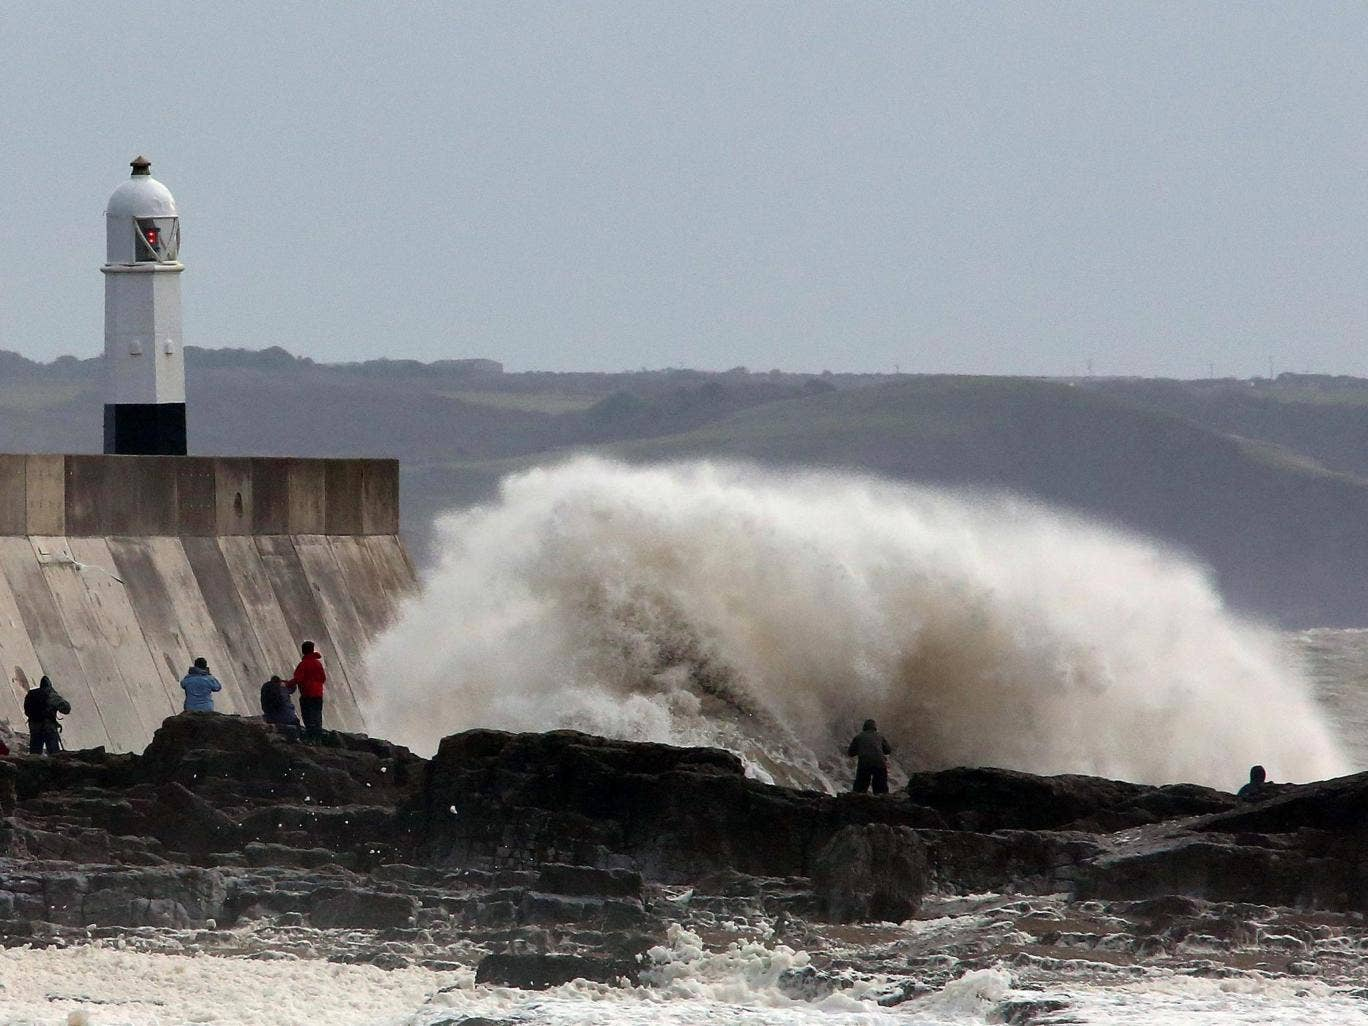 People stand on the sea wall at Porthcawl, south Wales, as heavy seas pound the harbour